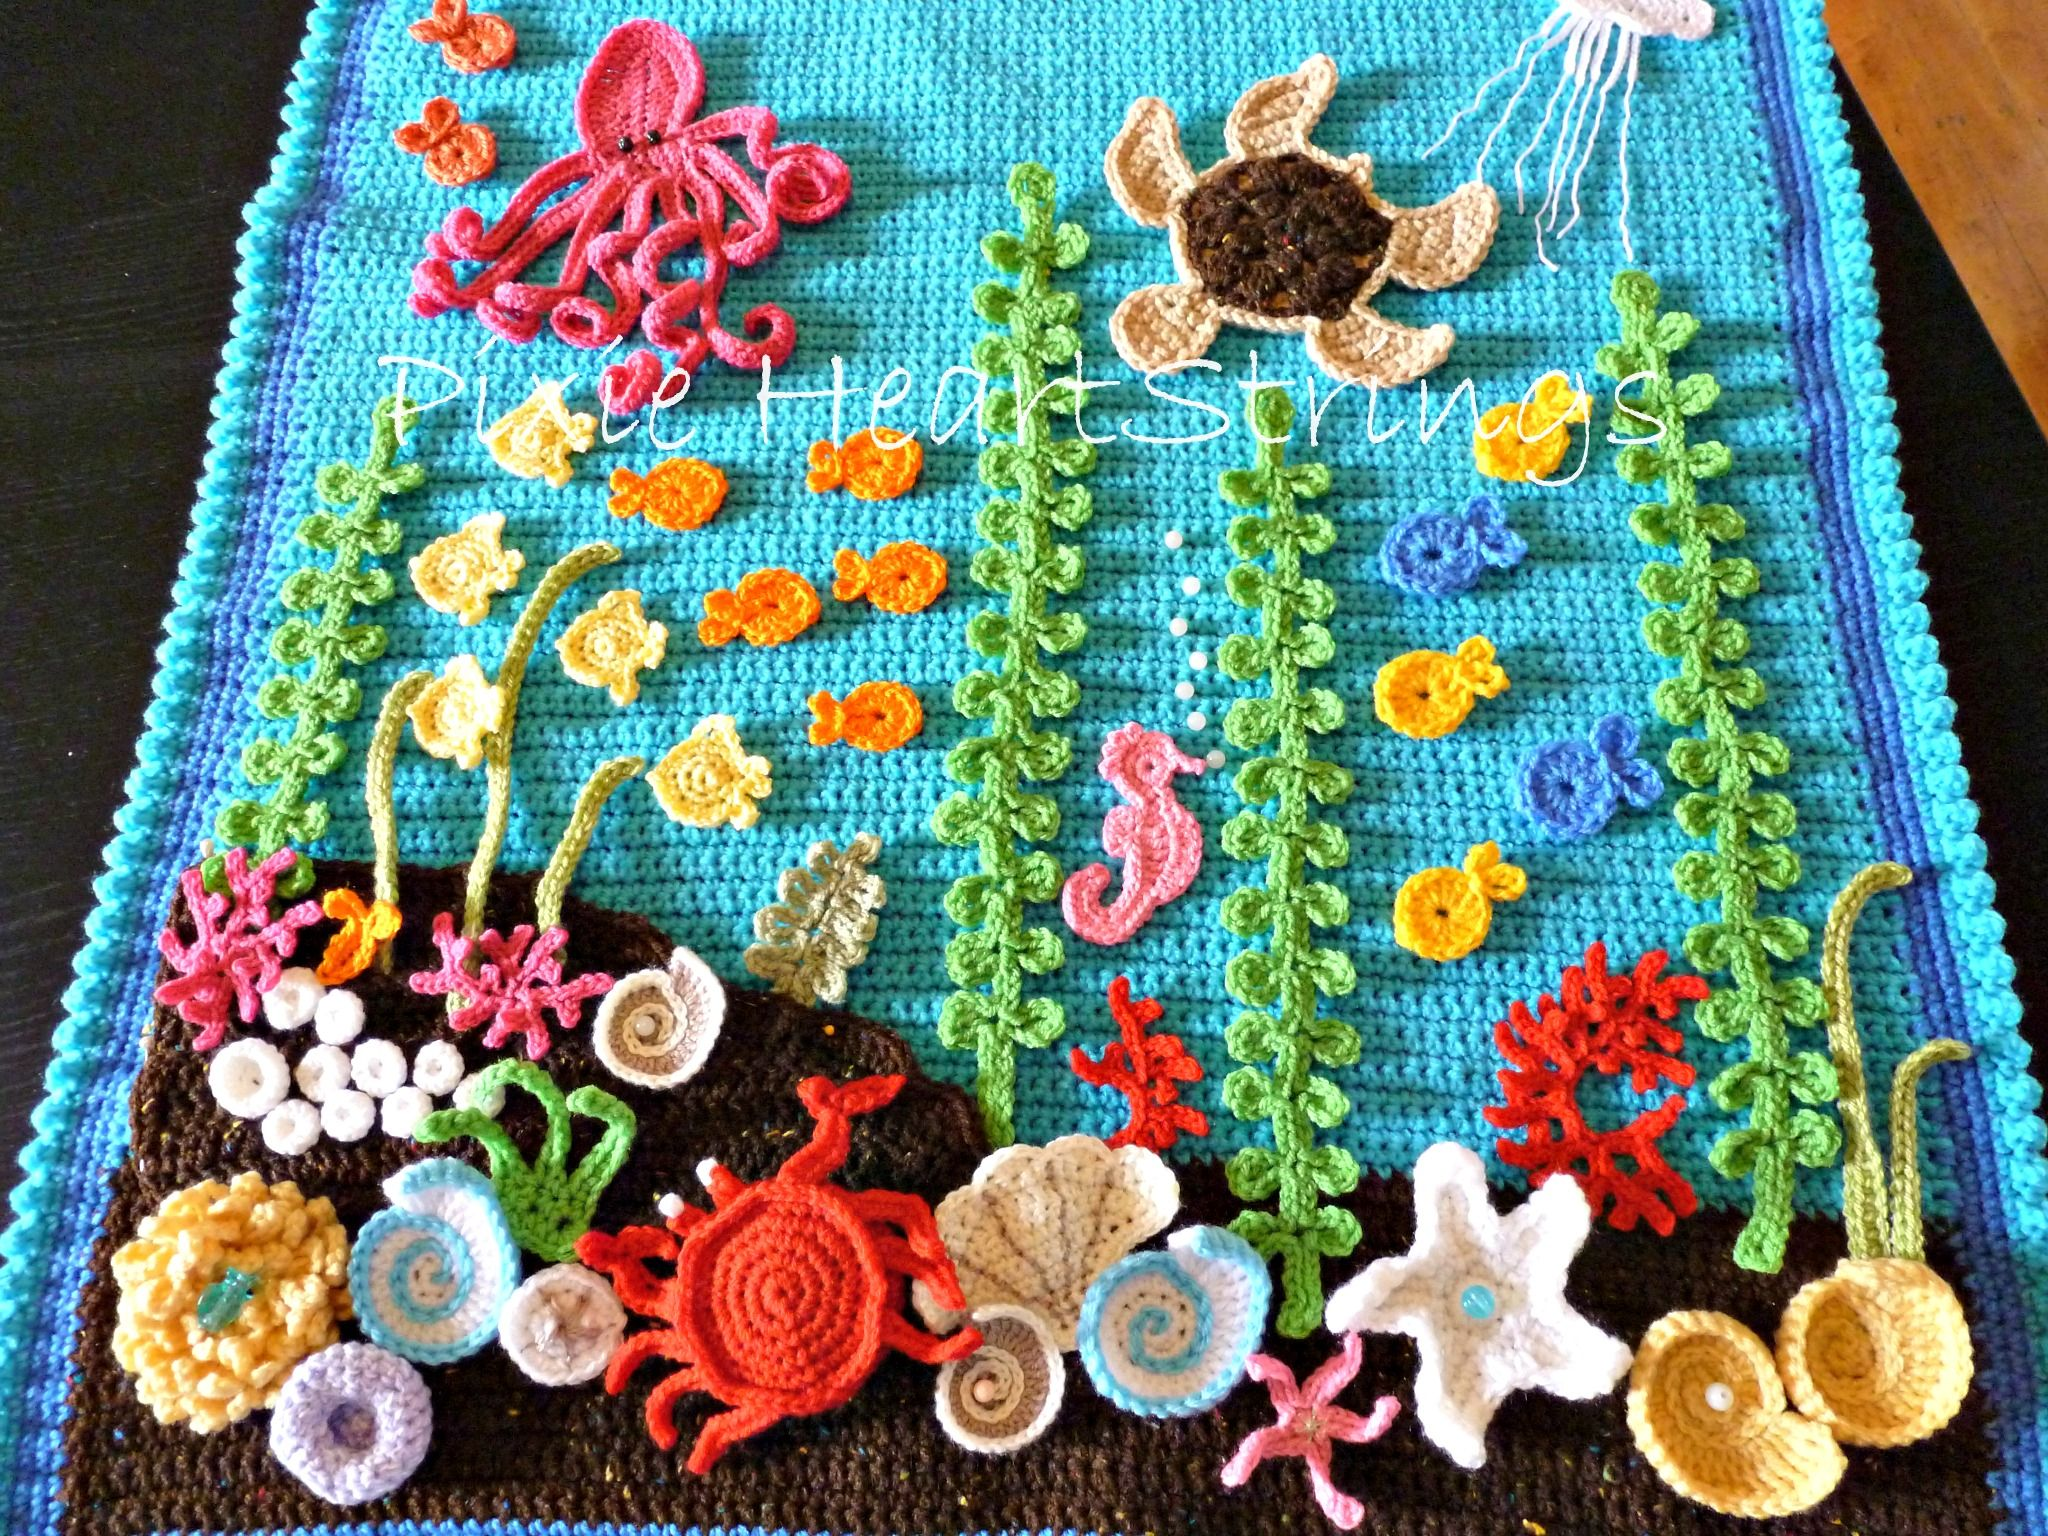 Crochet inspiration - Under The Sea: Loving this crochet afghan ...